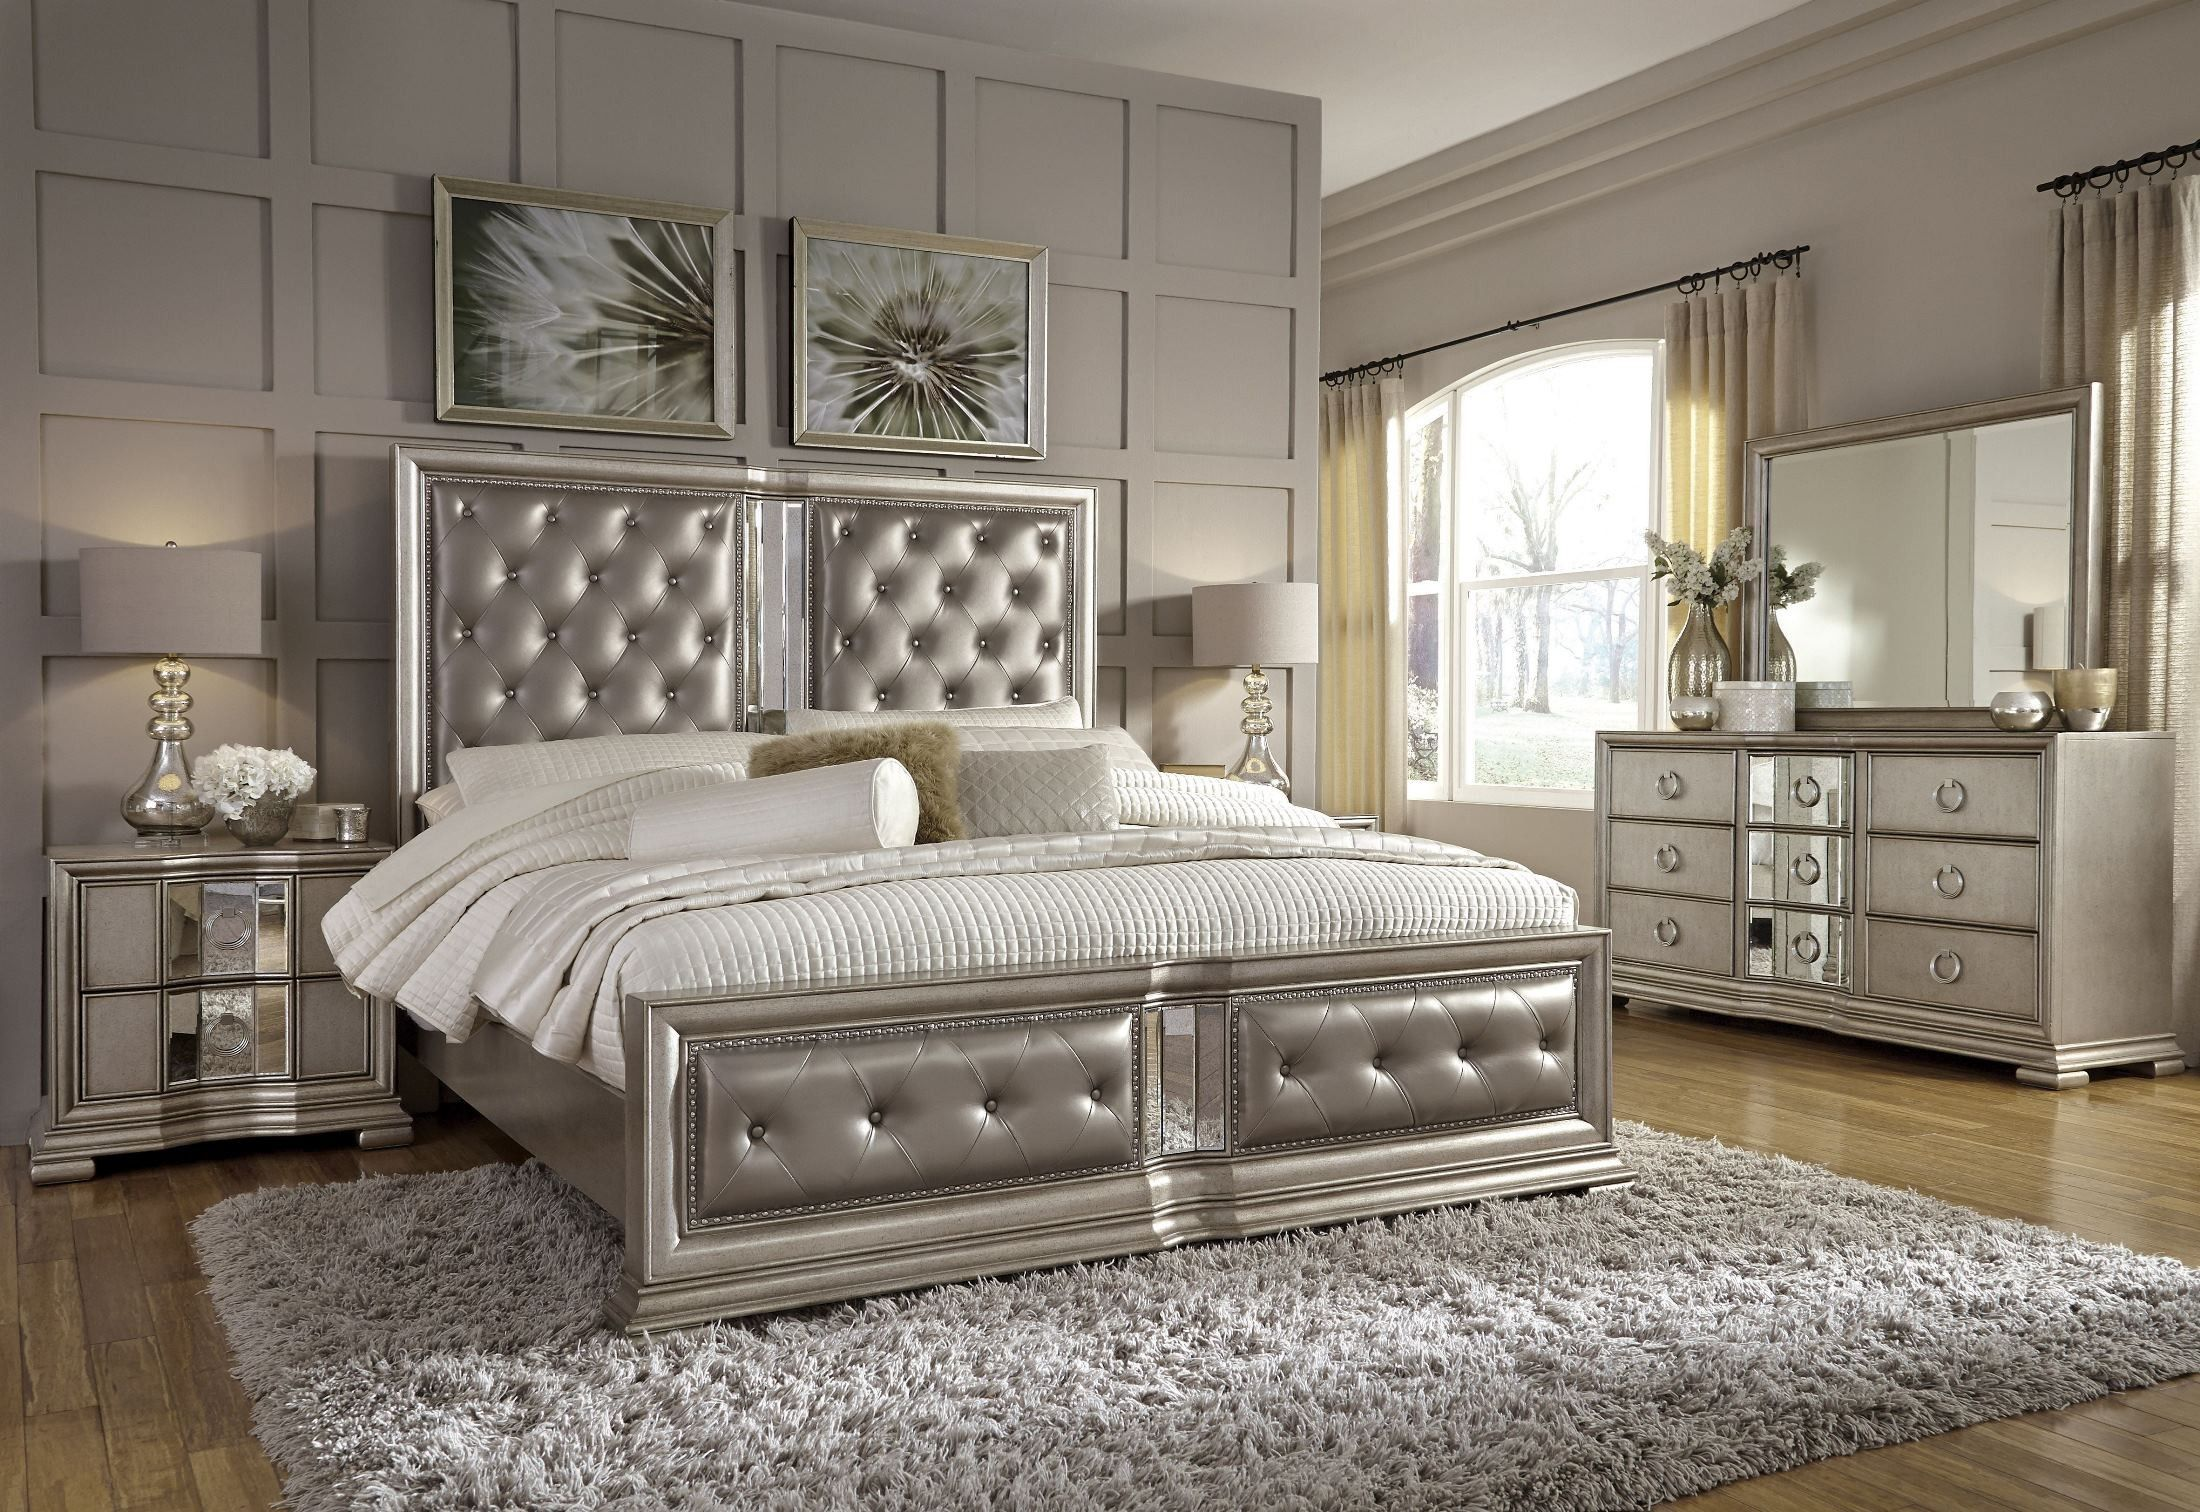 Couture Silver Panel Bedroom Set Silver Bedroom Furniture Silver Bedroom Mirrored Bedroom Furniture